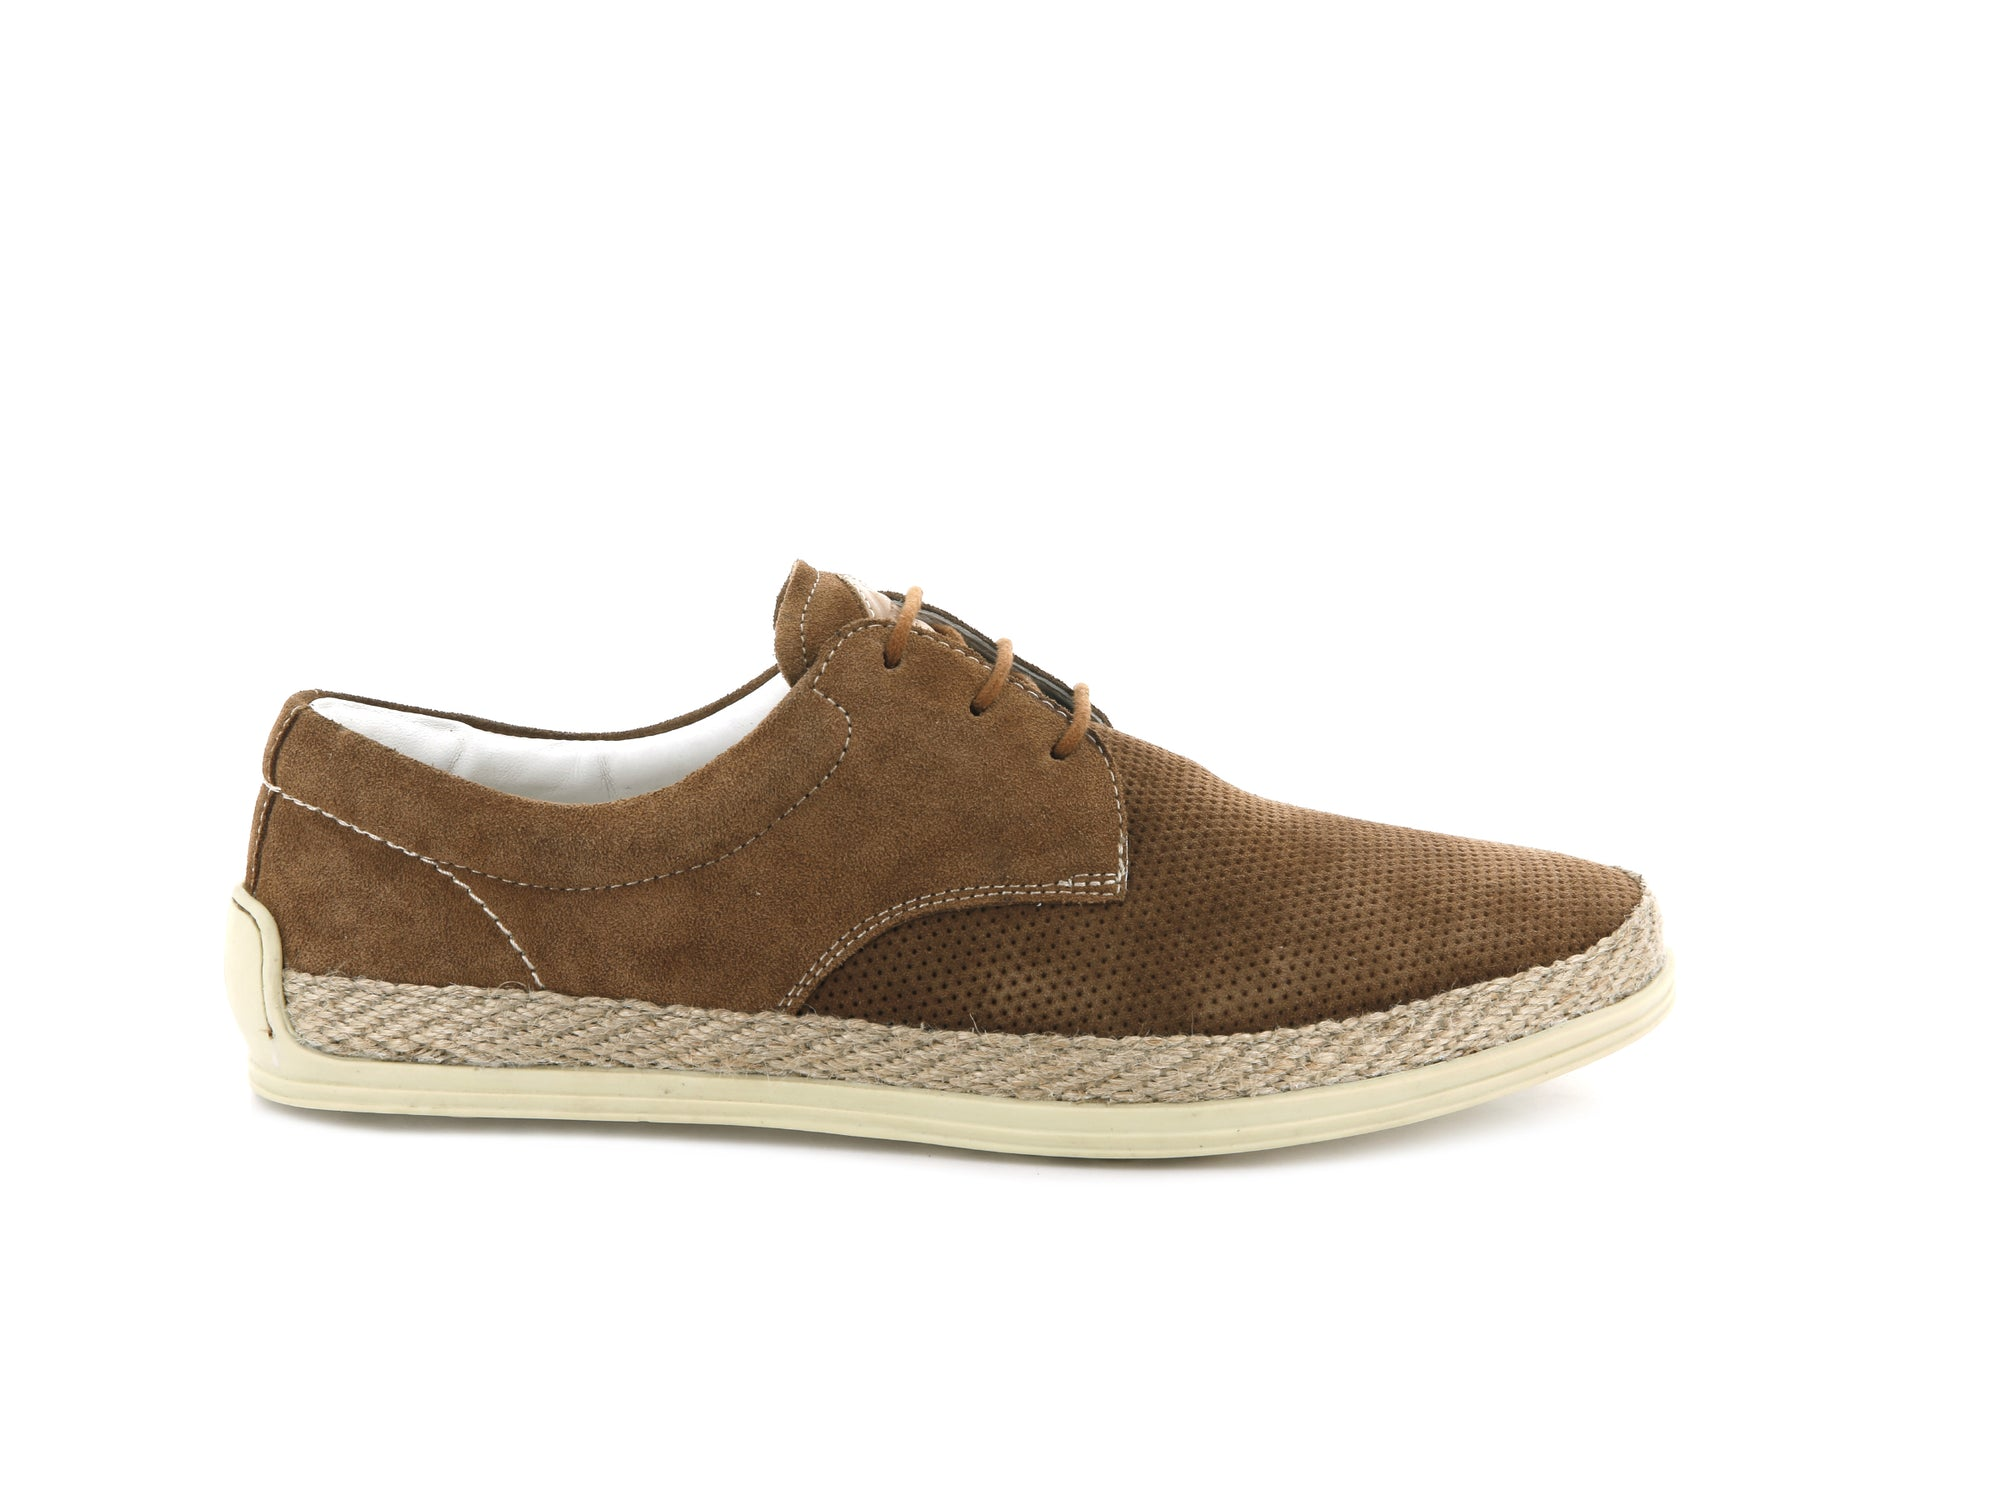 76007_198 | Derbies homme EPIDEMIC | TOBACCO